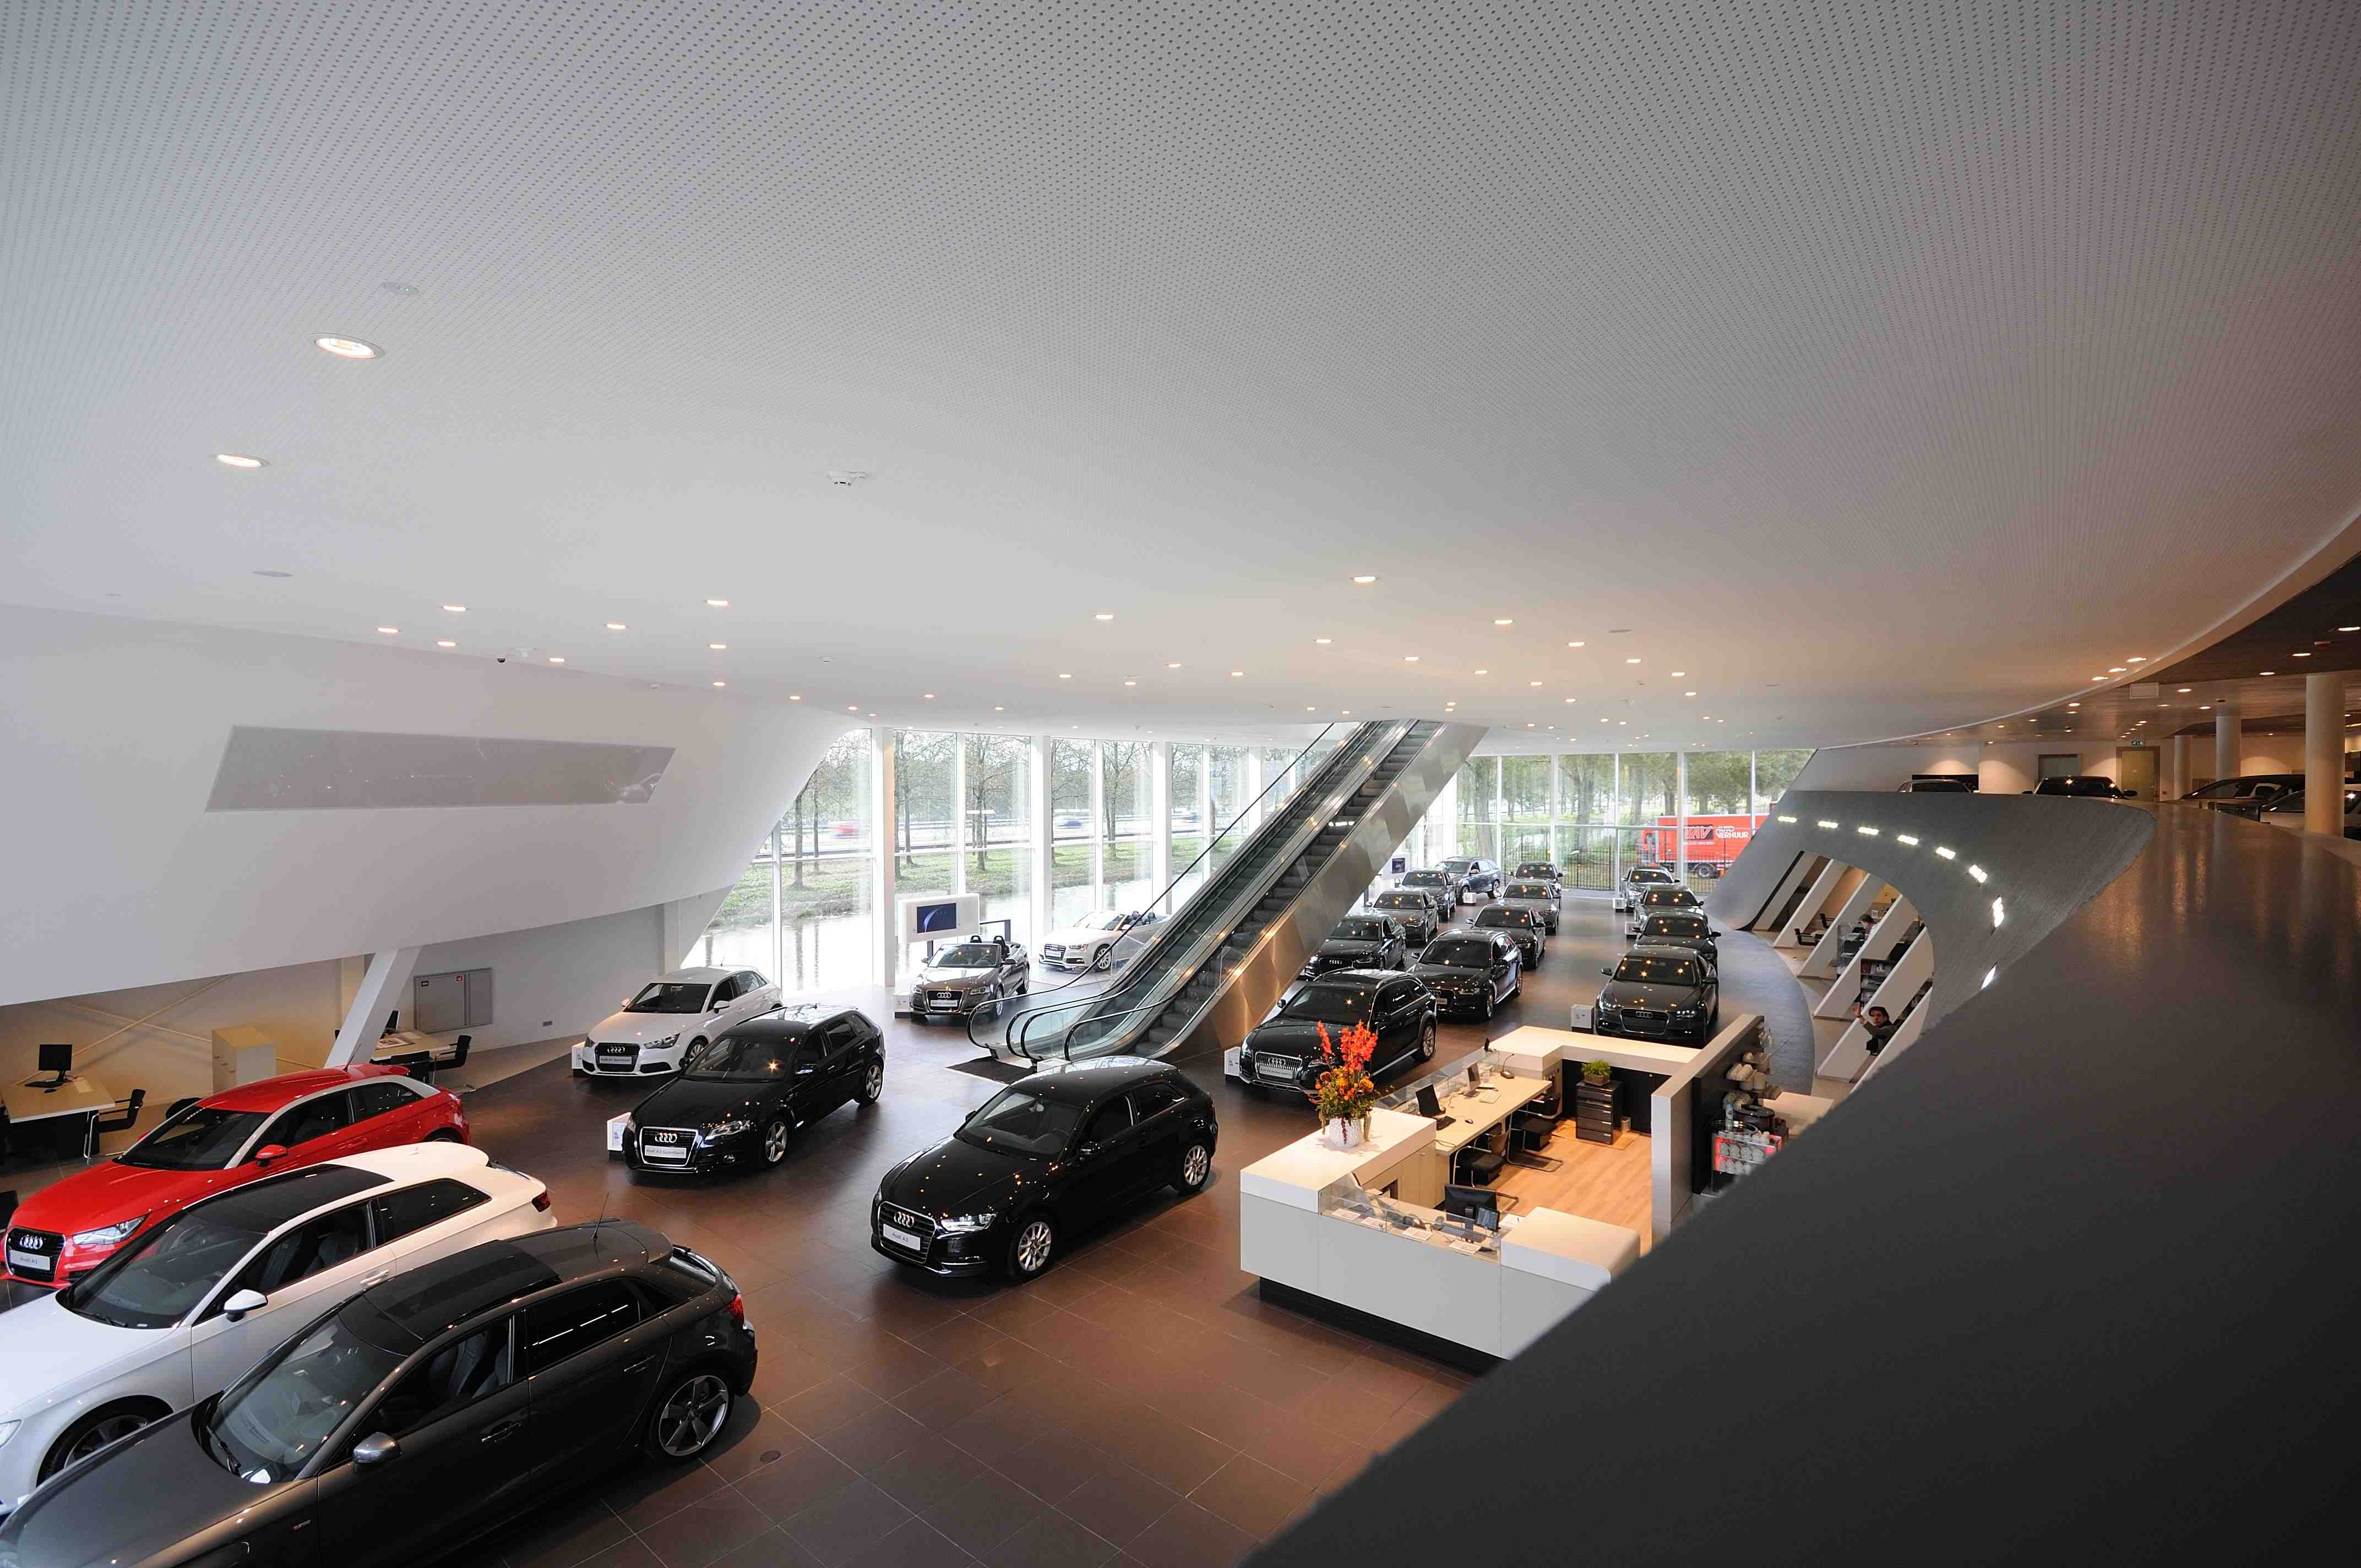 MeerBusiness Kerstborrel op 21 december 2012 in Audi Centrum Amsterdam